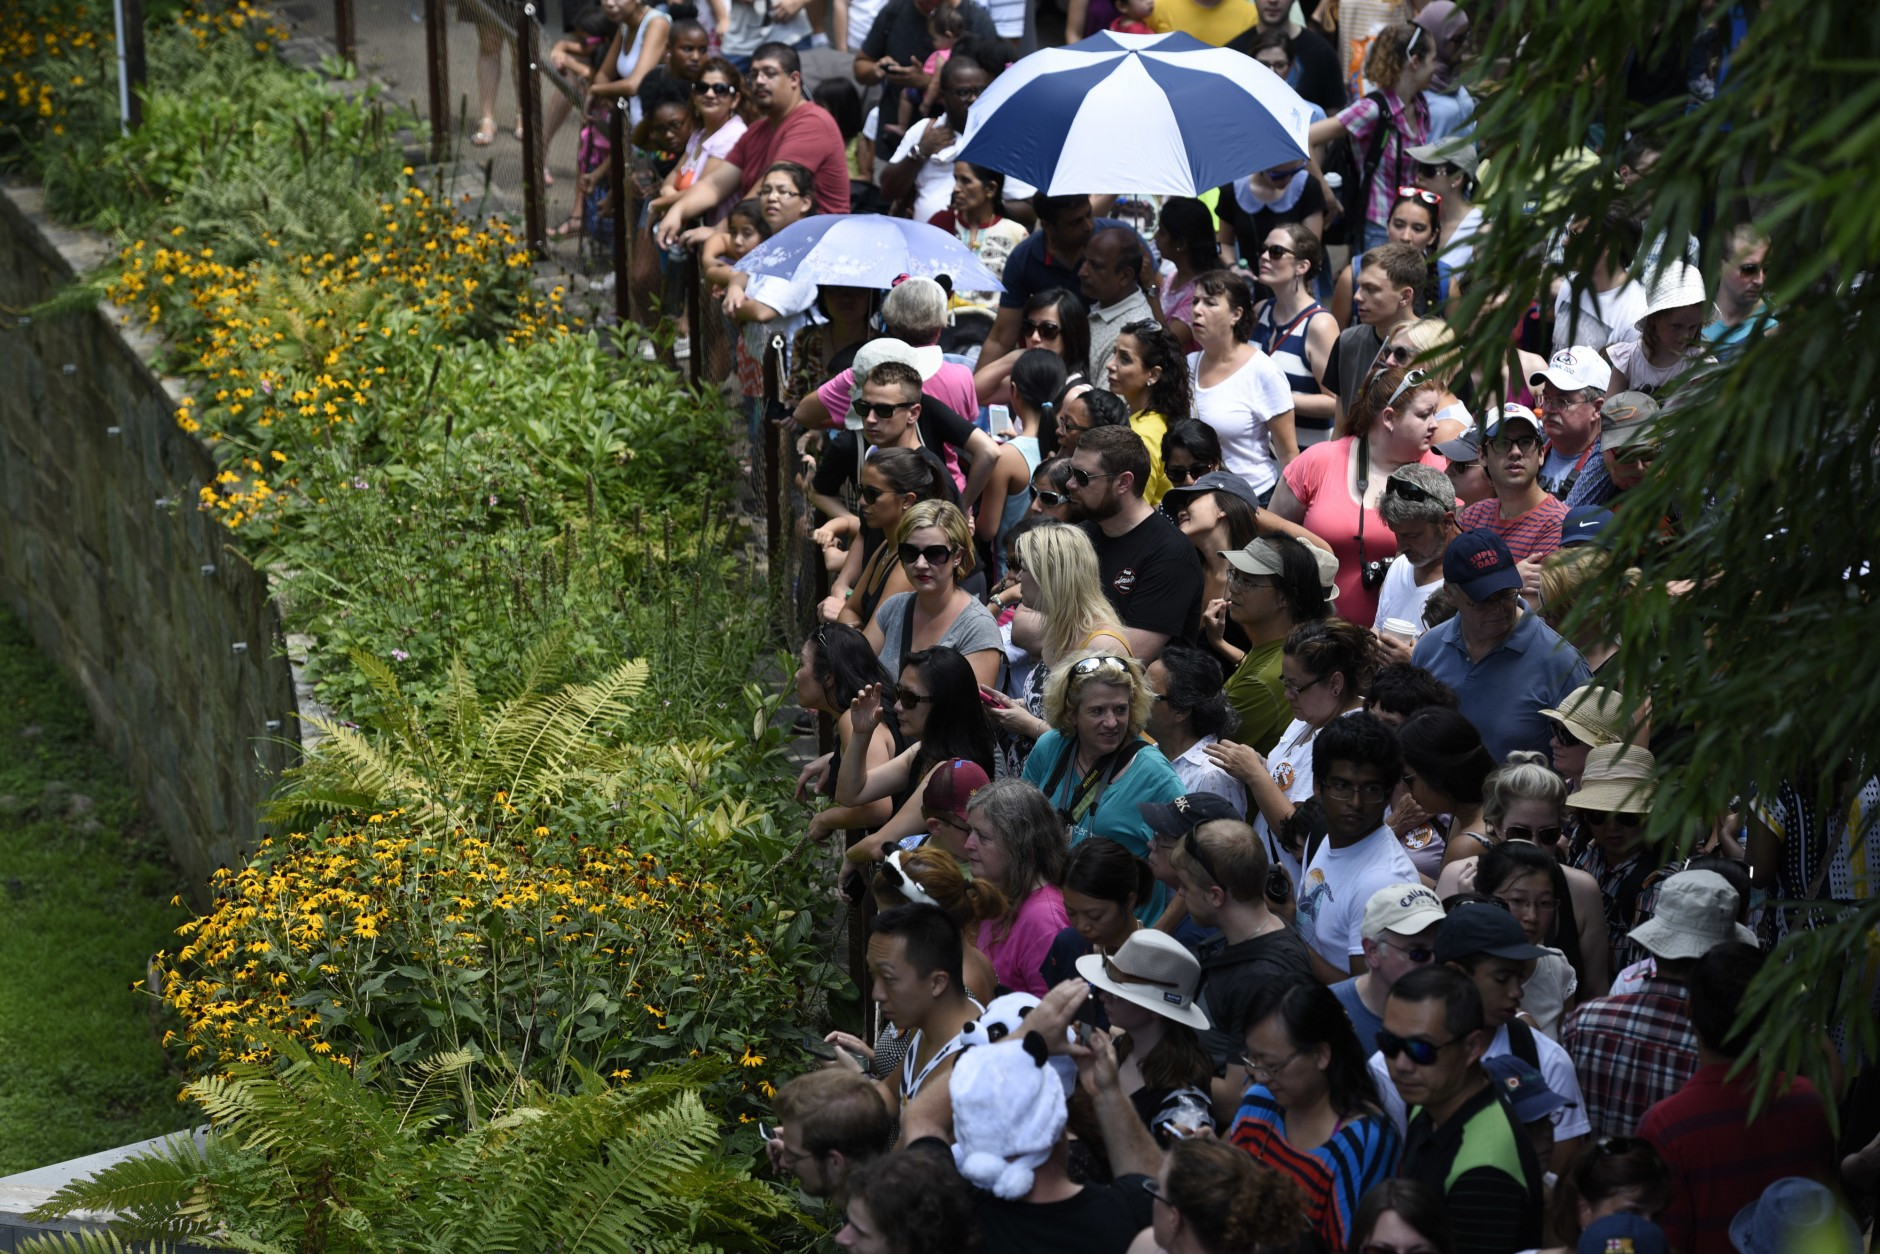 A crowd waits for giant panda cub Bei Bei at the National Zoo in Washington, Saturday, Aug. 20, 2016, where the zoo celebrated Bei Bei's first birthday. (AP Photo/Sait Serkan Gurbuz)